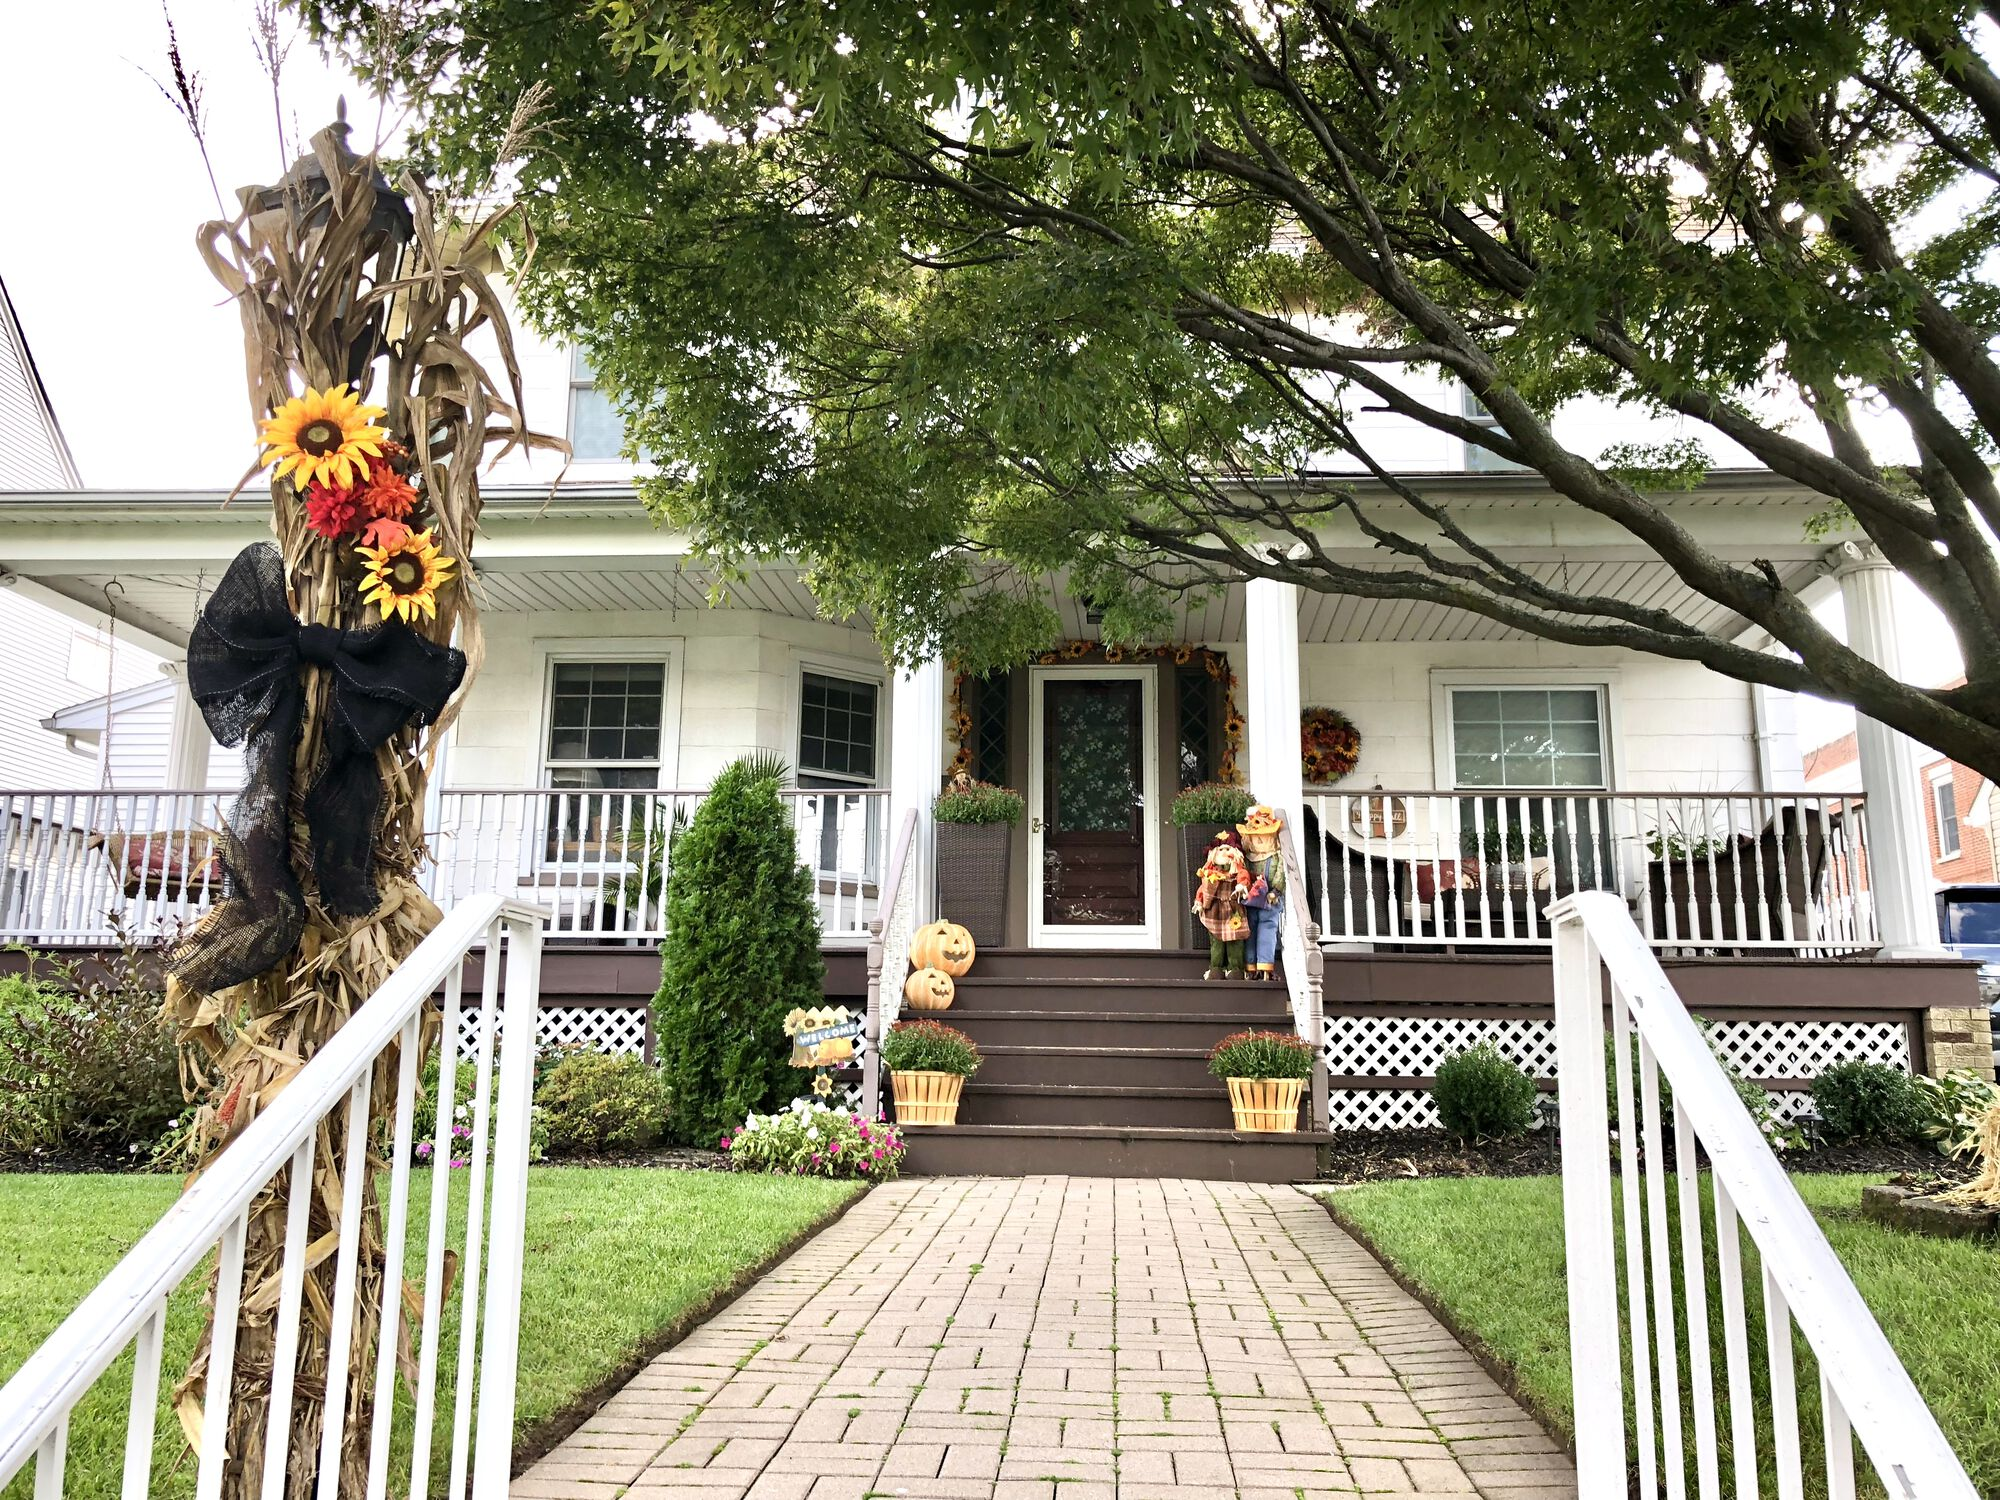 Front Porch Remodeling with Azek Timbertech Grooved Composite Flooring and Rails, HBG Posts, New Composite Steps, Cambridge Paver Walkway in Hasbrouck Heights, Bergen County NJ (1)